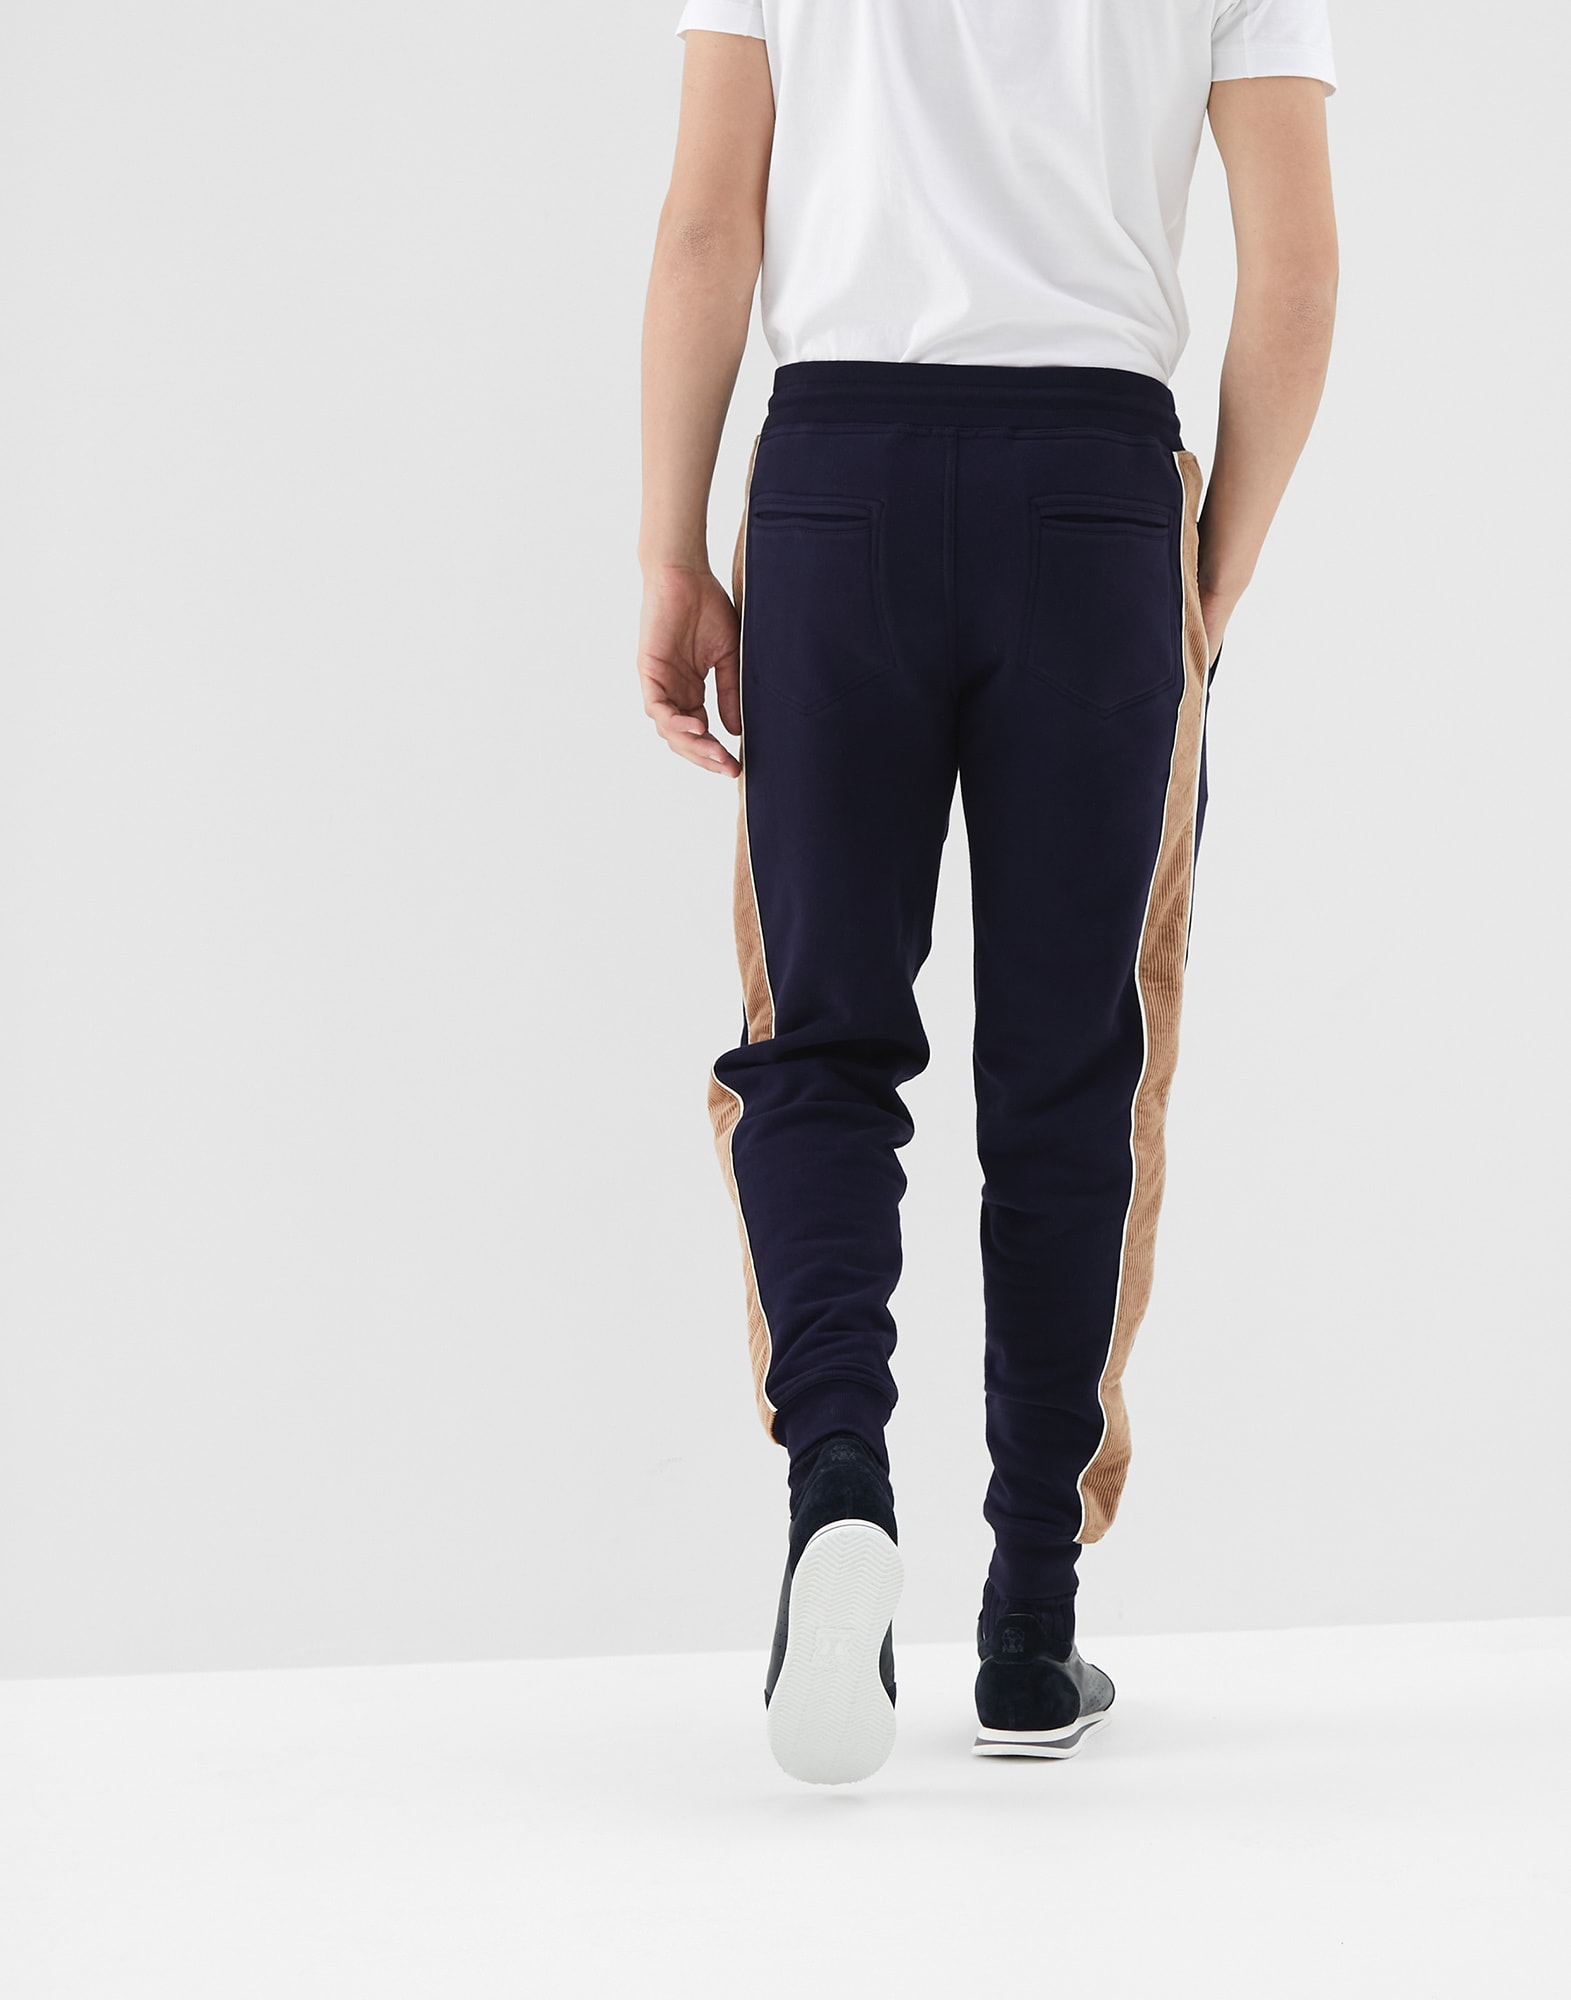 Sweatpants Cobalt Man 1 - Brunello Cucinelli